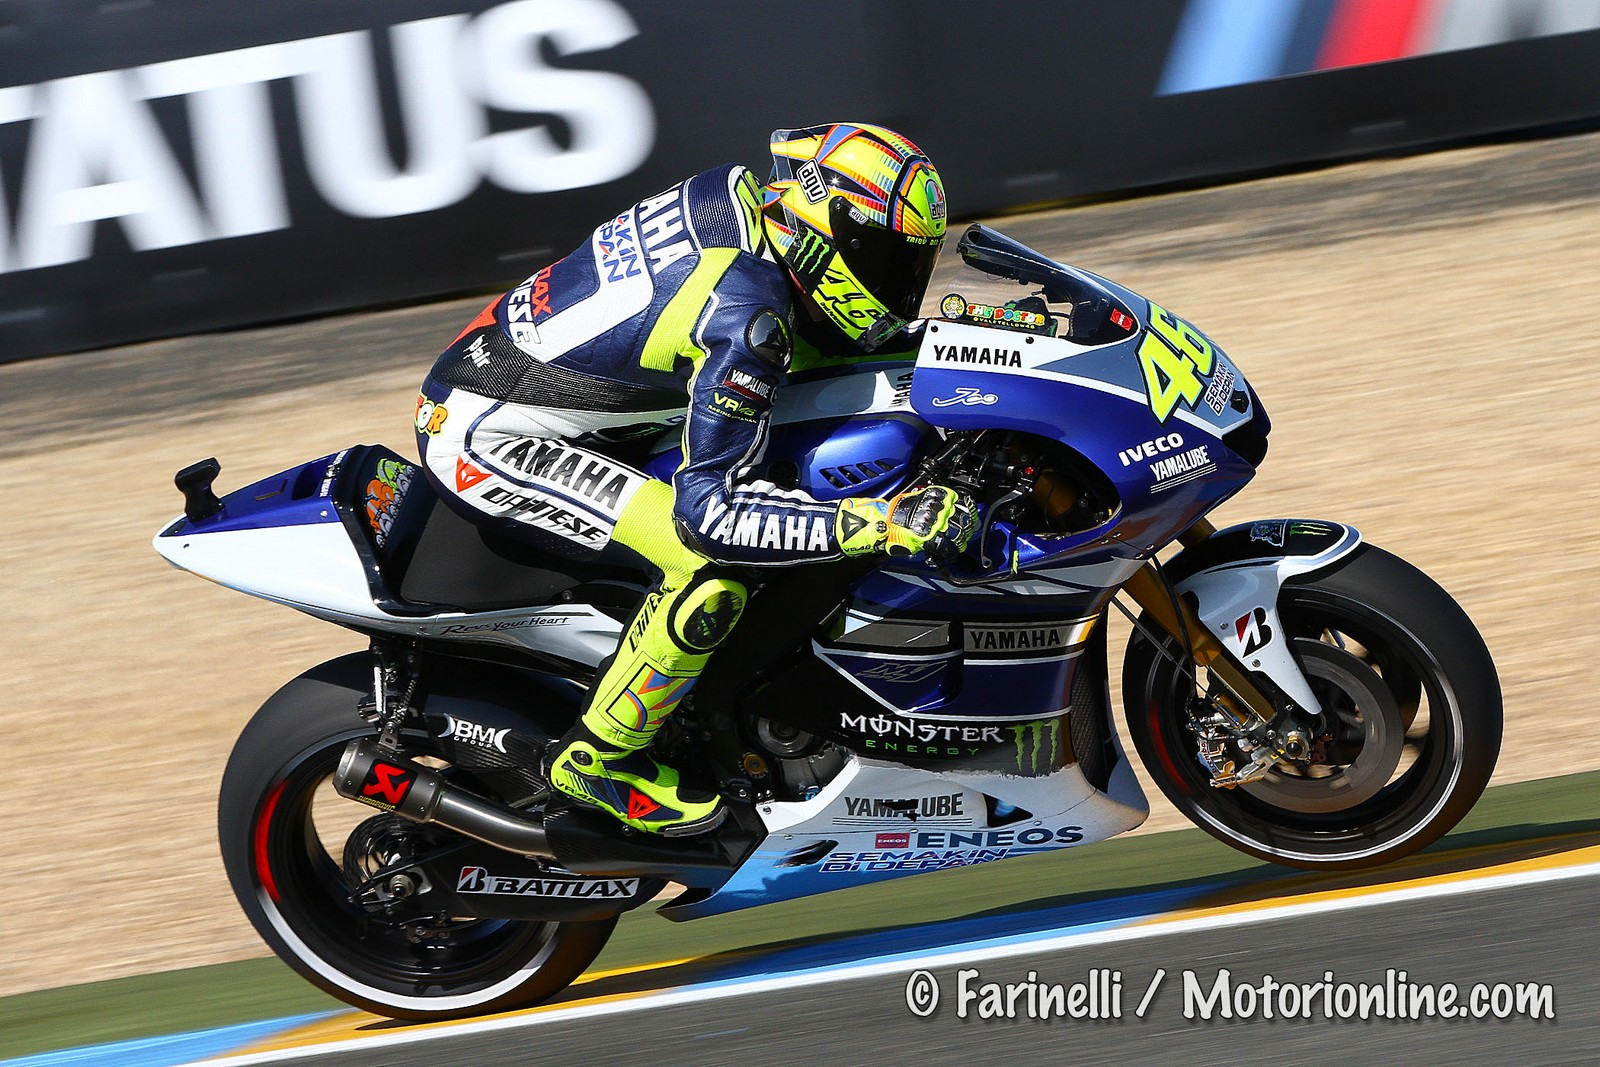 ... will broadcast the 2015 and 2016 MotoGP seasons Image: www.motogp.com